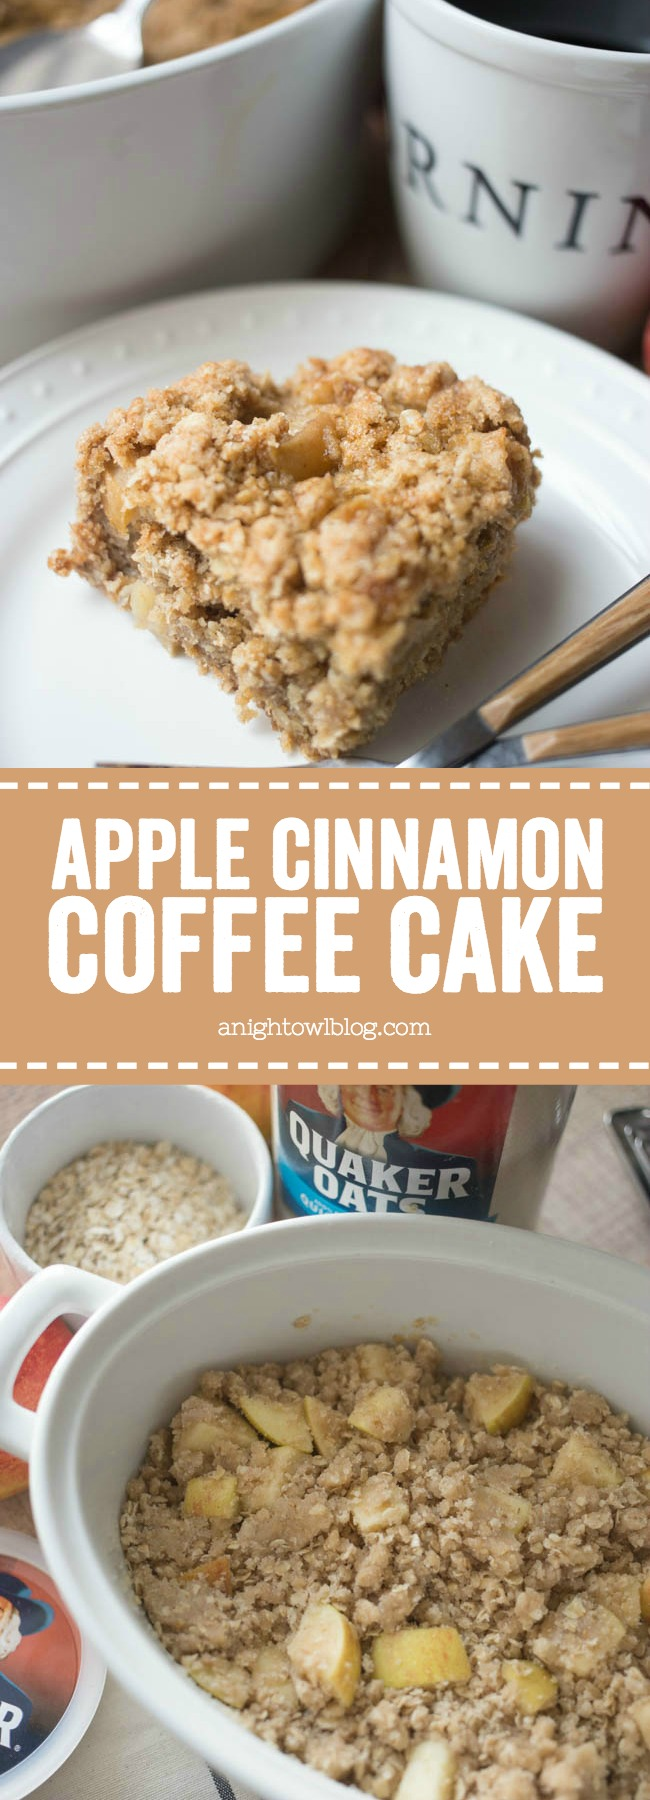 This Apple Cinnamon Coffee Cake is a delicious start to your day! Perfect for breakfast or brunch treat during the holidays!